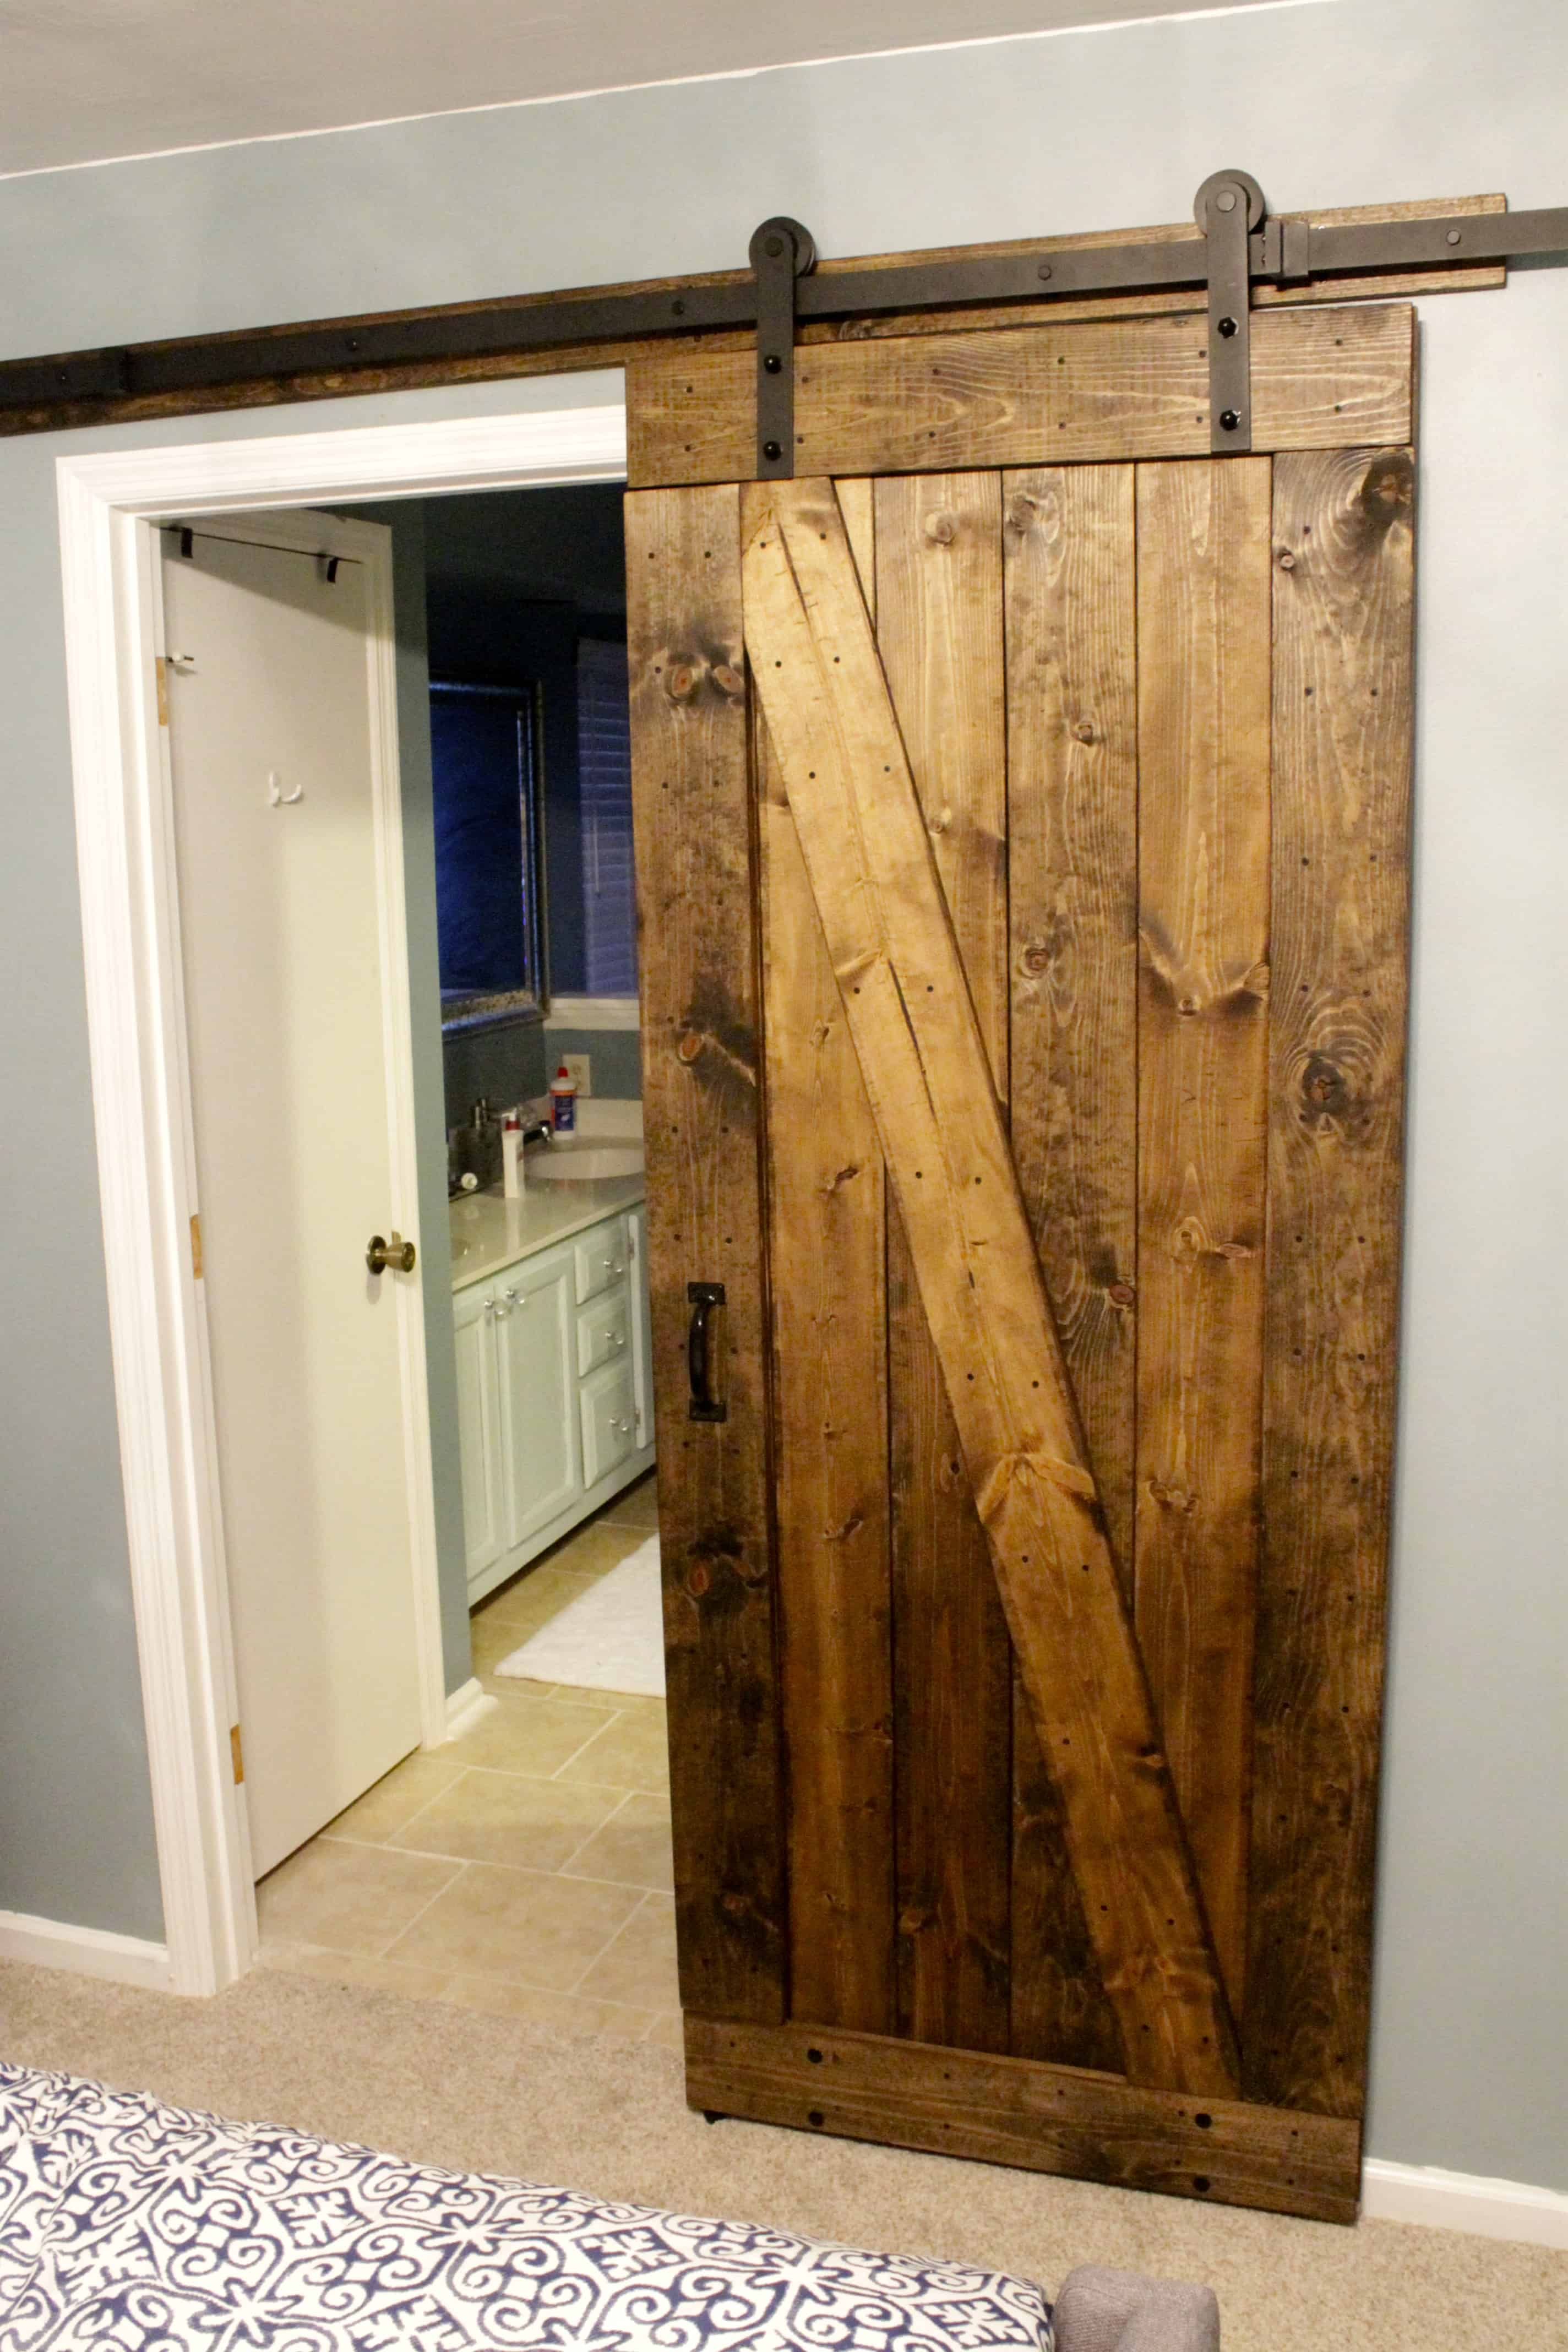 How to mount a barn door using tc bunny hardware from amazon charleston crafted